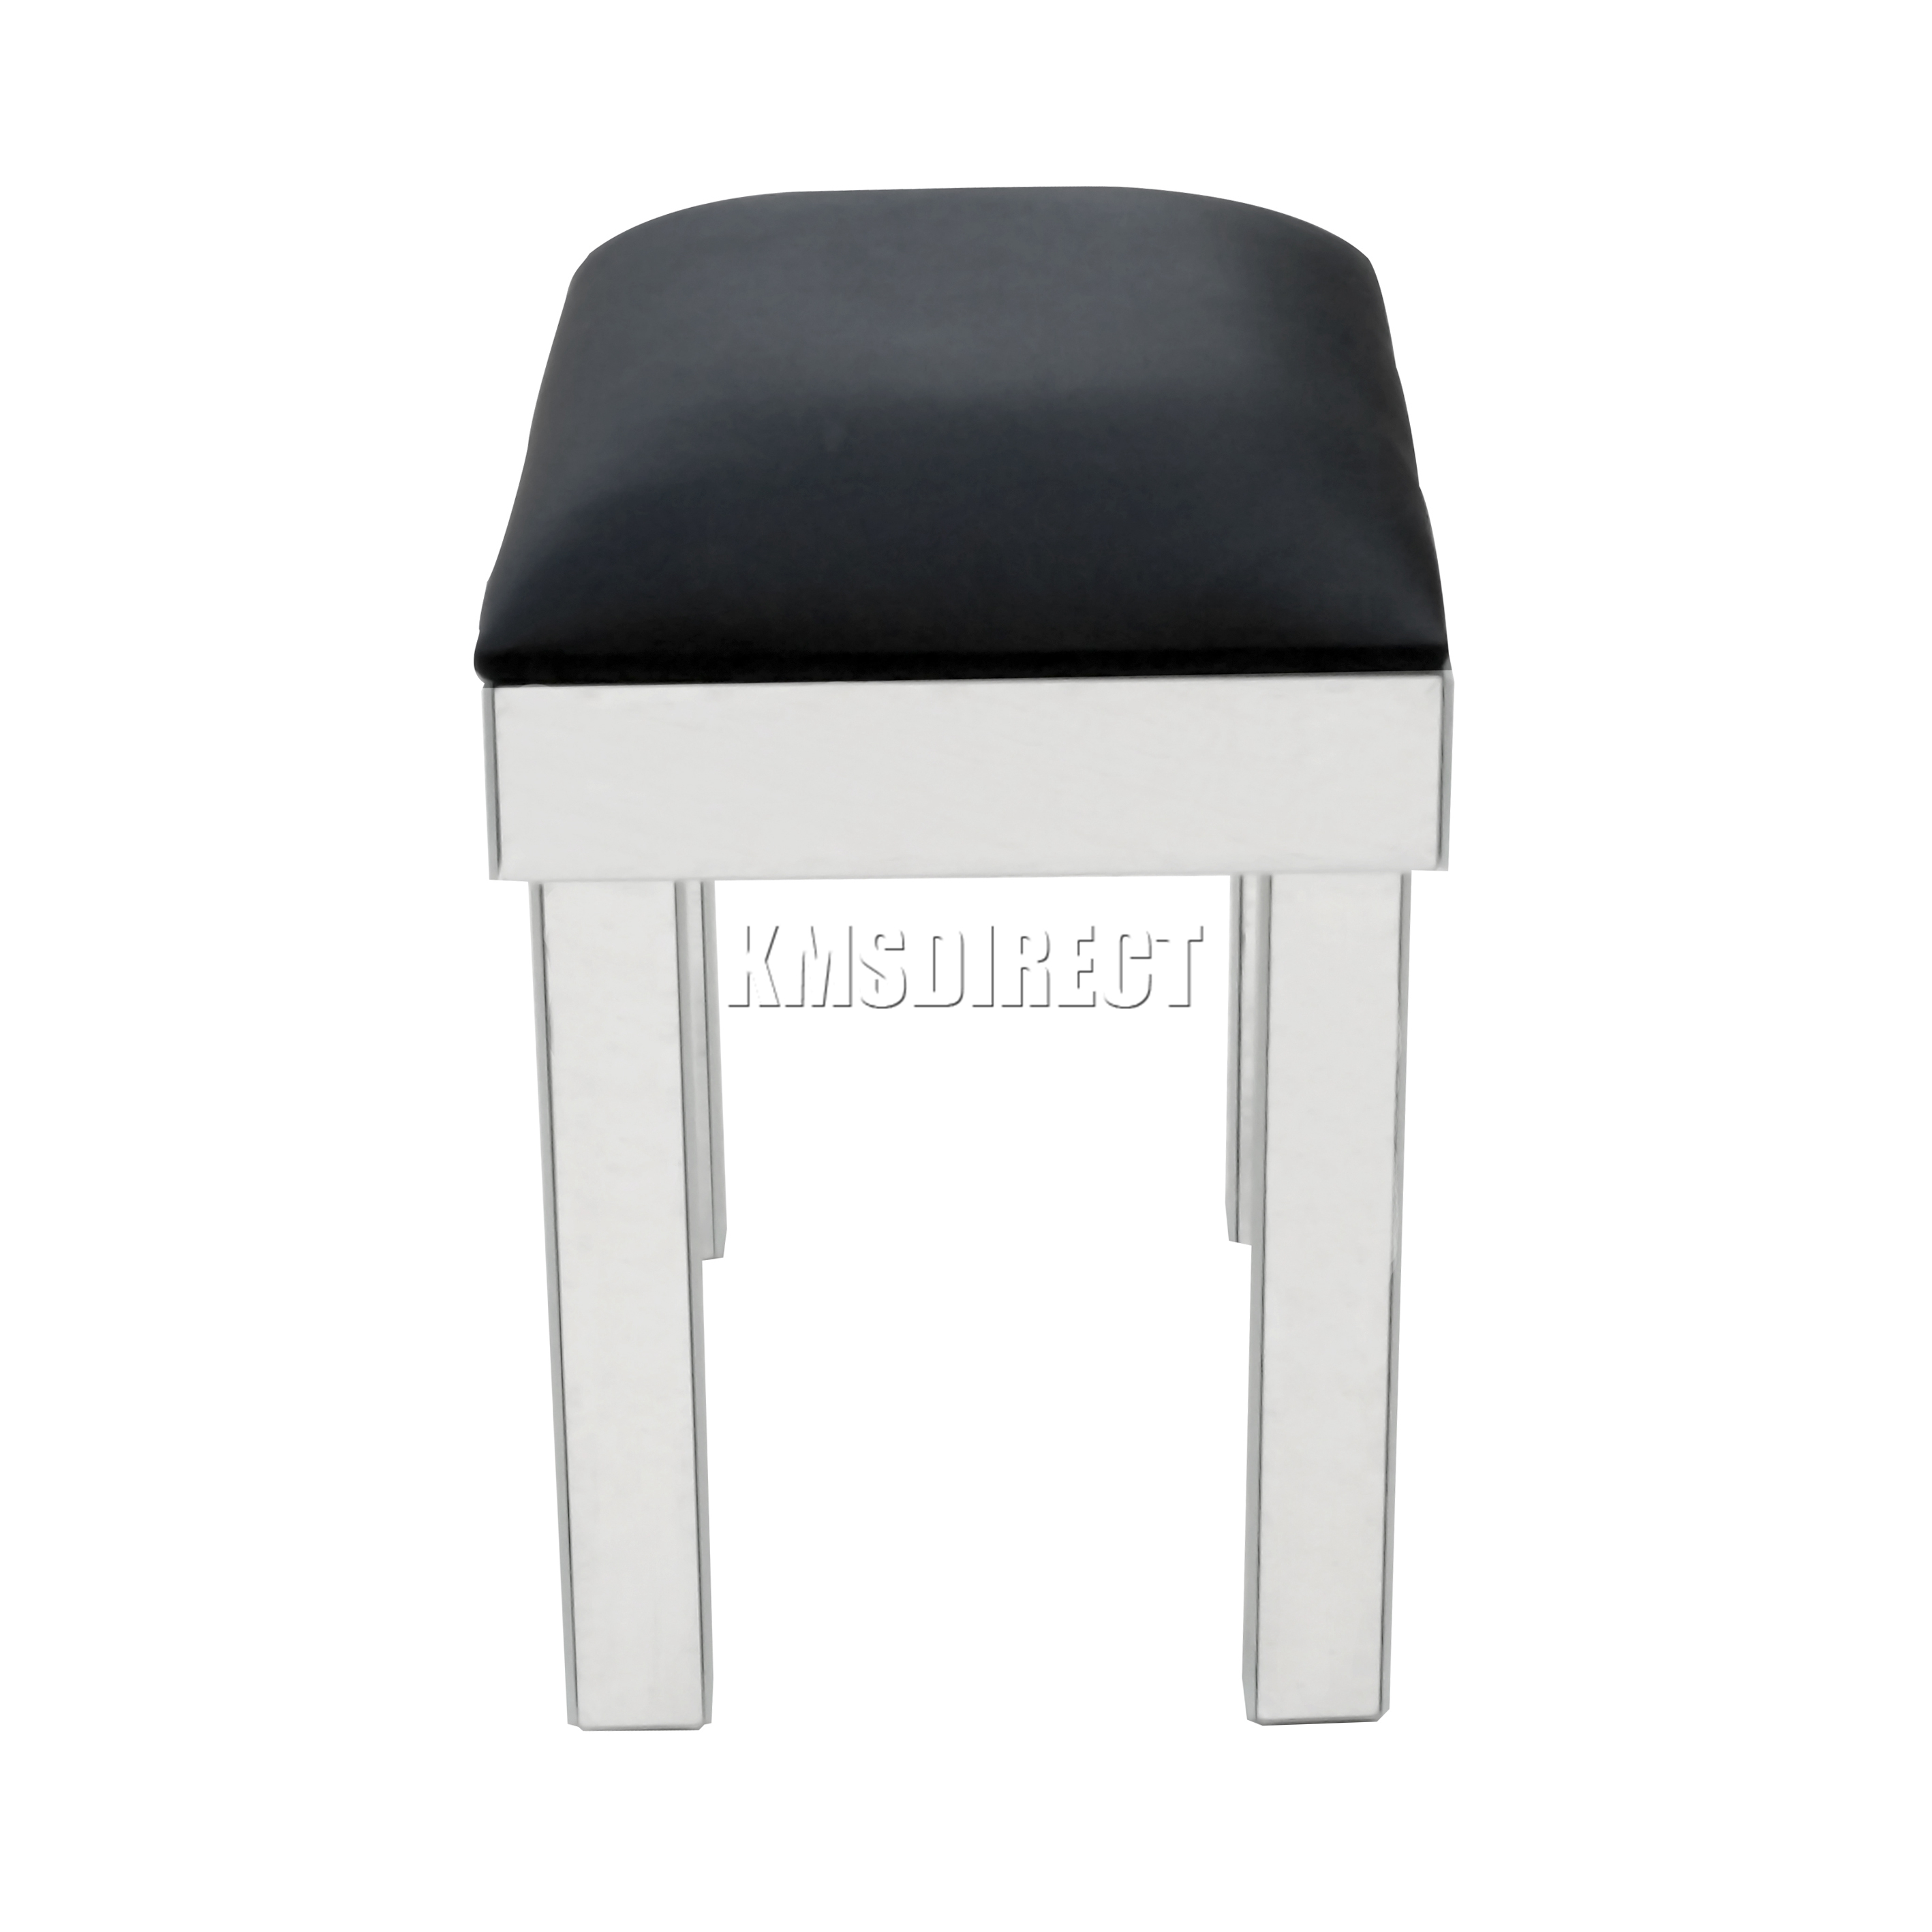 Westwood Mirrored Furniture Glass Stool Seat With Black